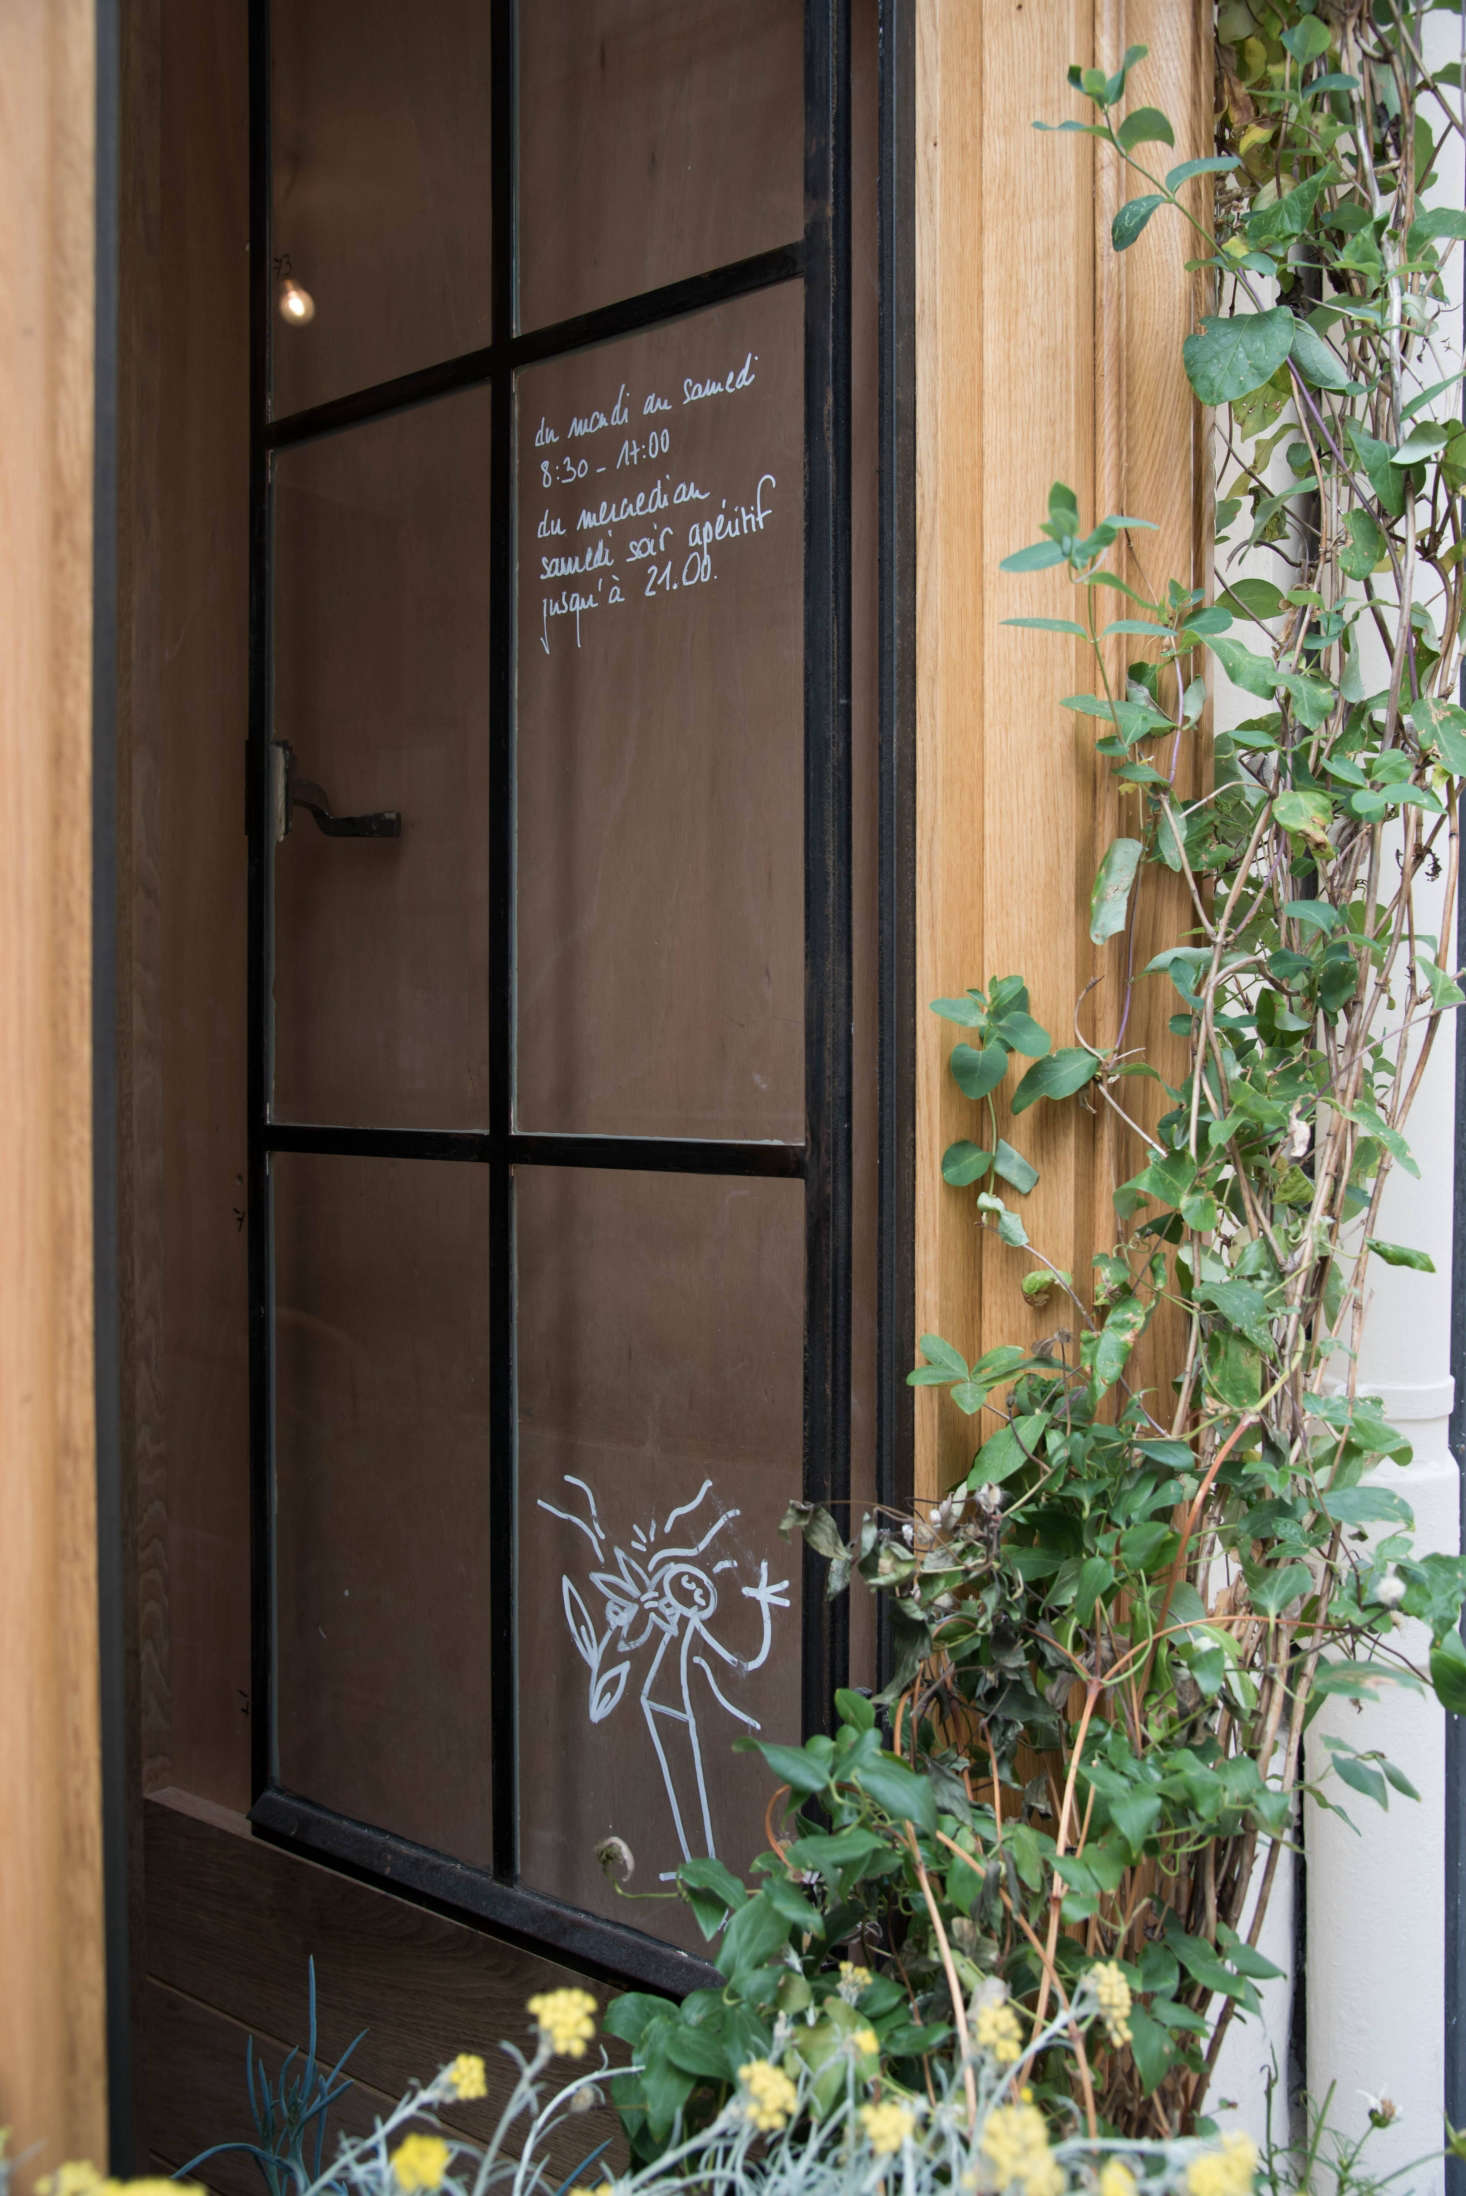 Steel-frame windows double as handwritten signs—and a place for quirky, almost hidden doodles by Paris-based artist YAK.